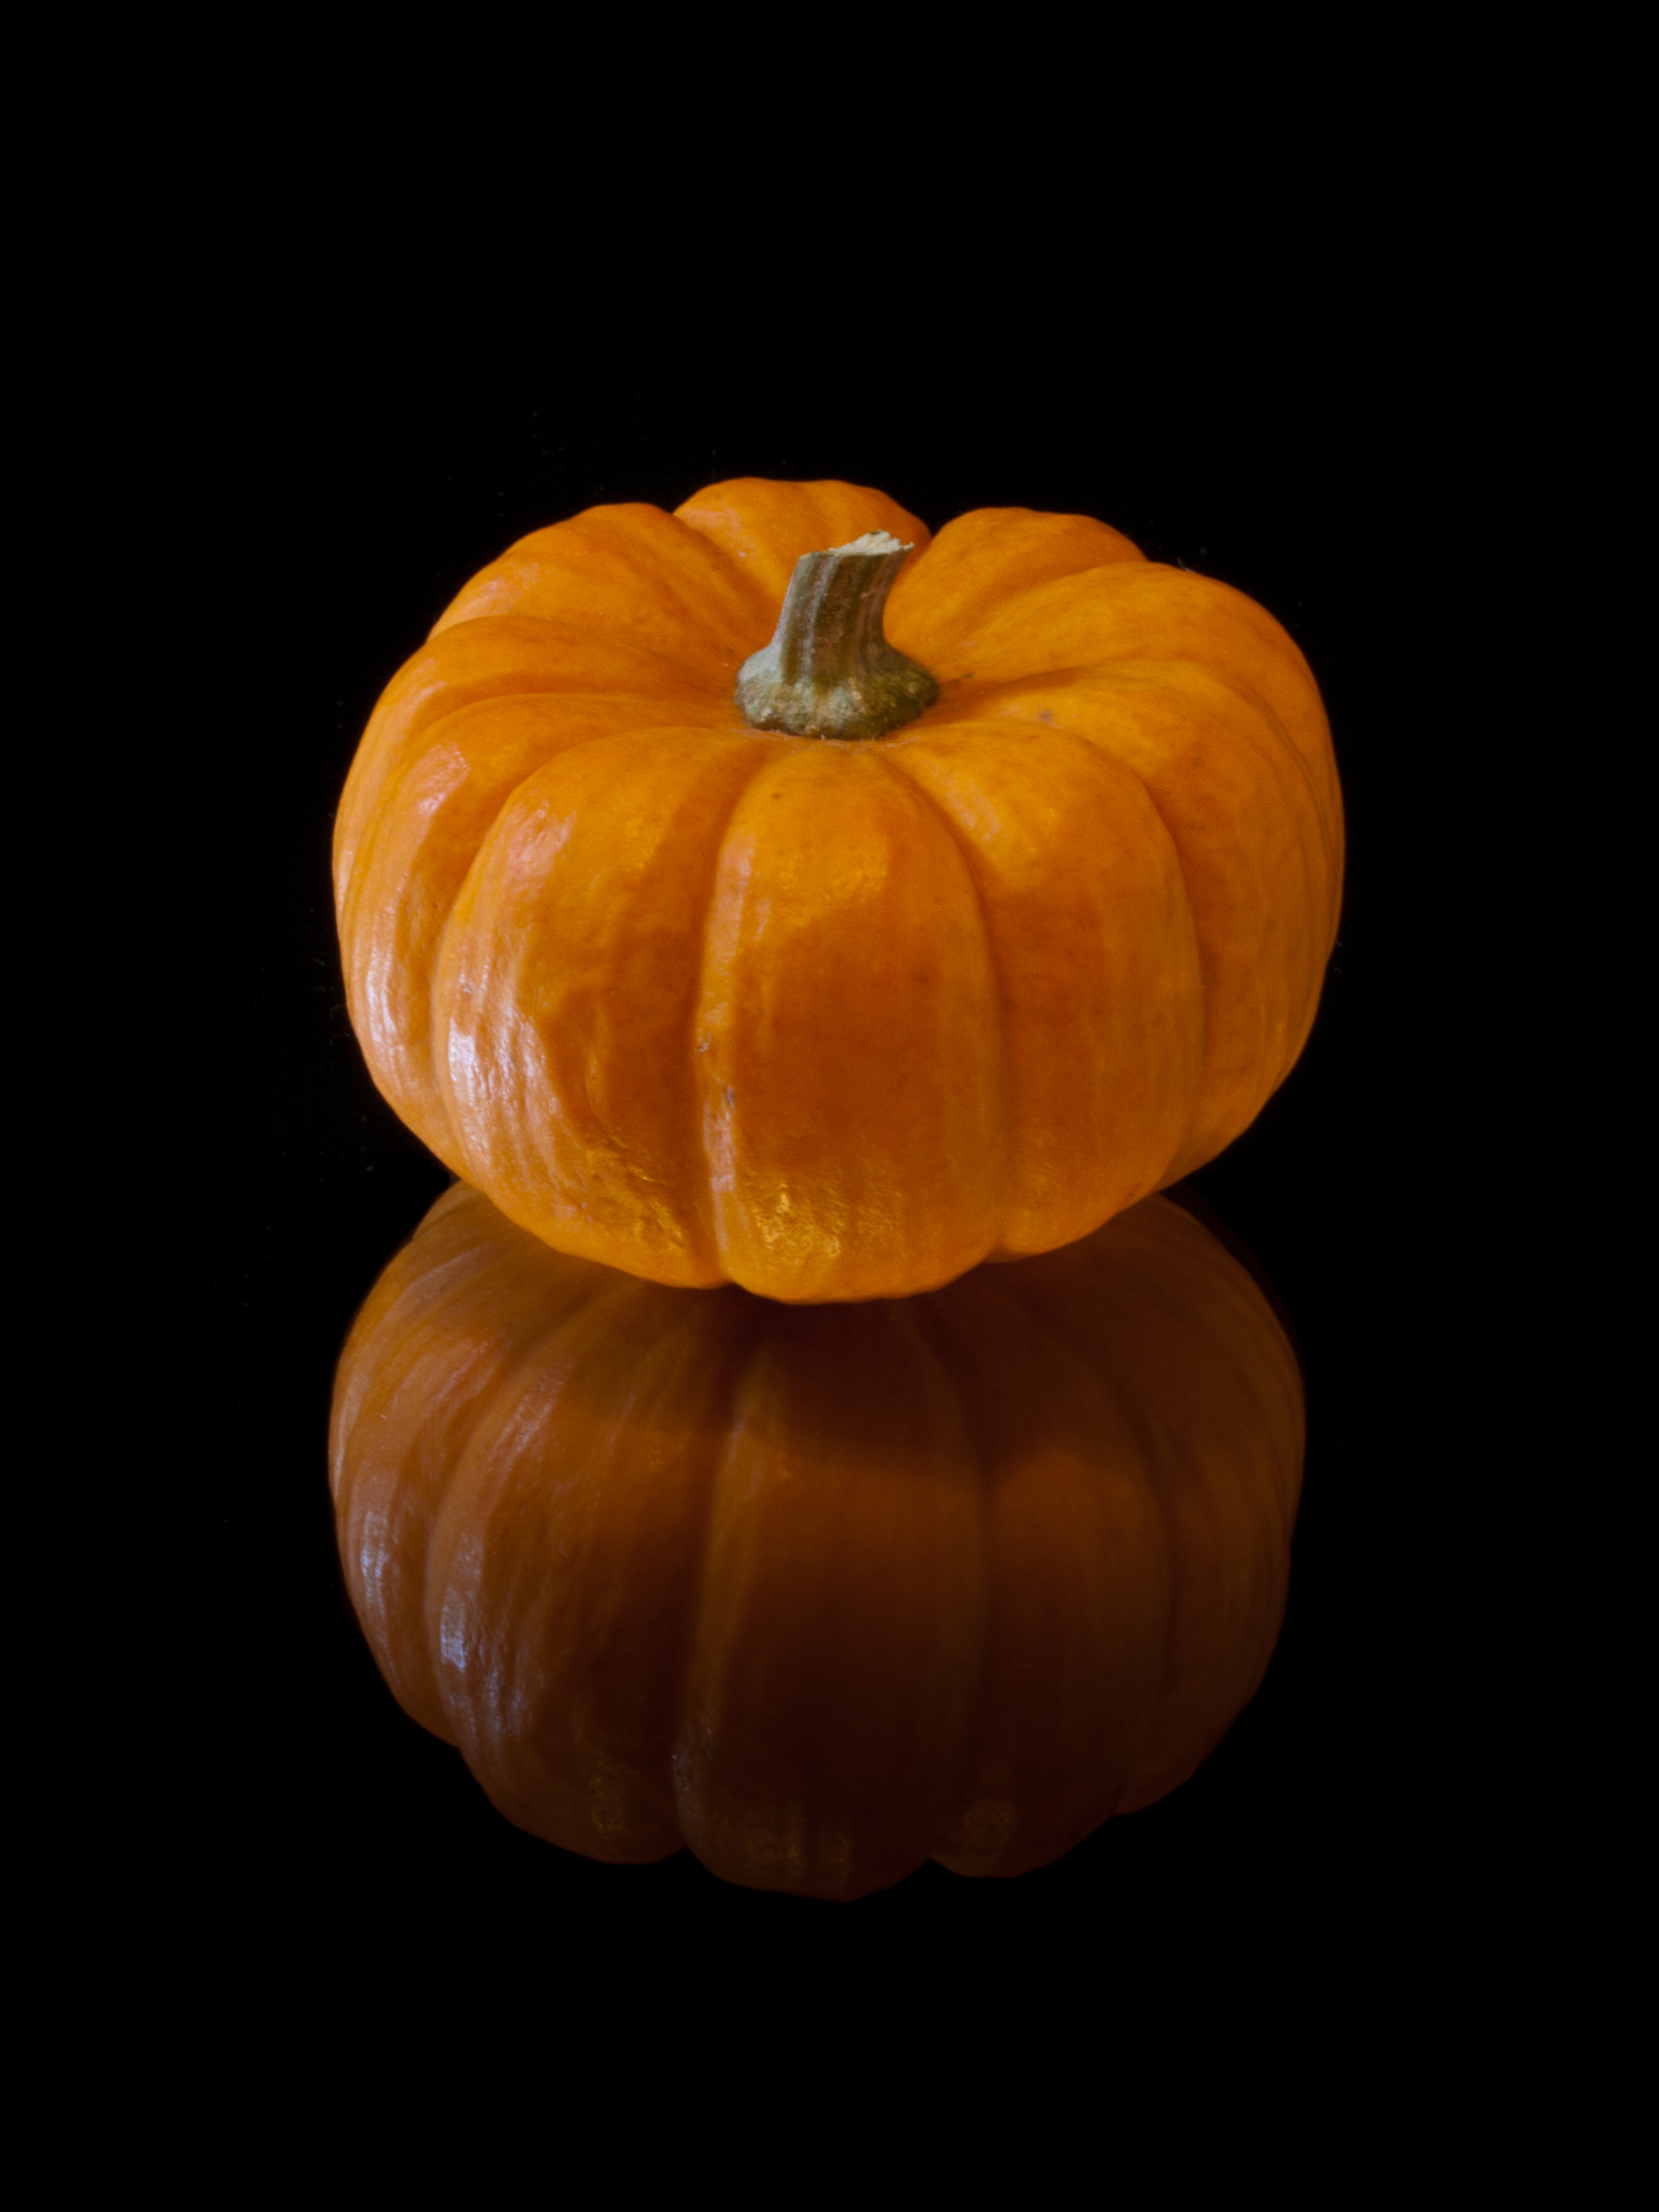 history of pumpkins A pumpkin is a gourd-like squash that grows on vines it is cultivated for its large pulpy round orange fruit with firm orange skin, and numerous seeds there is a.